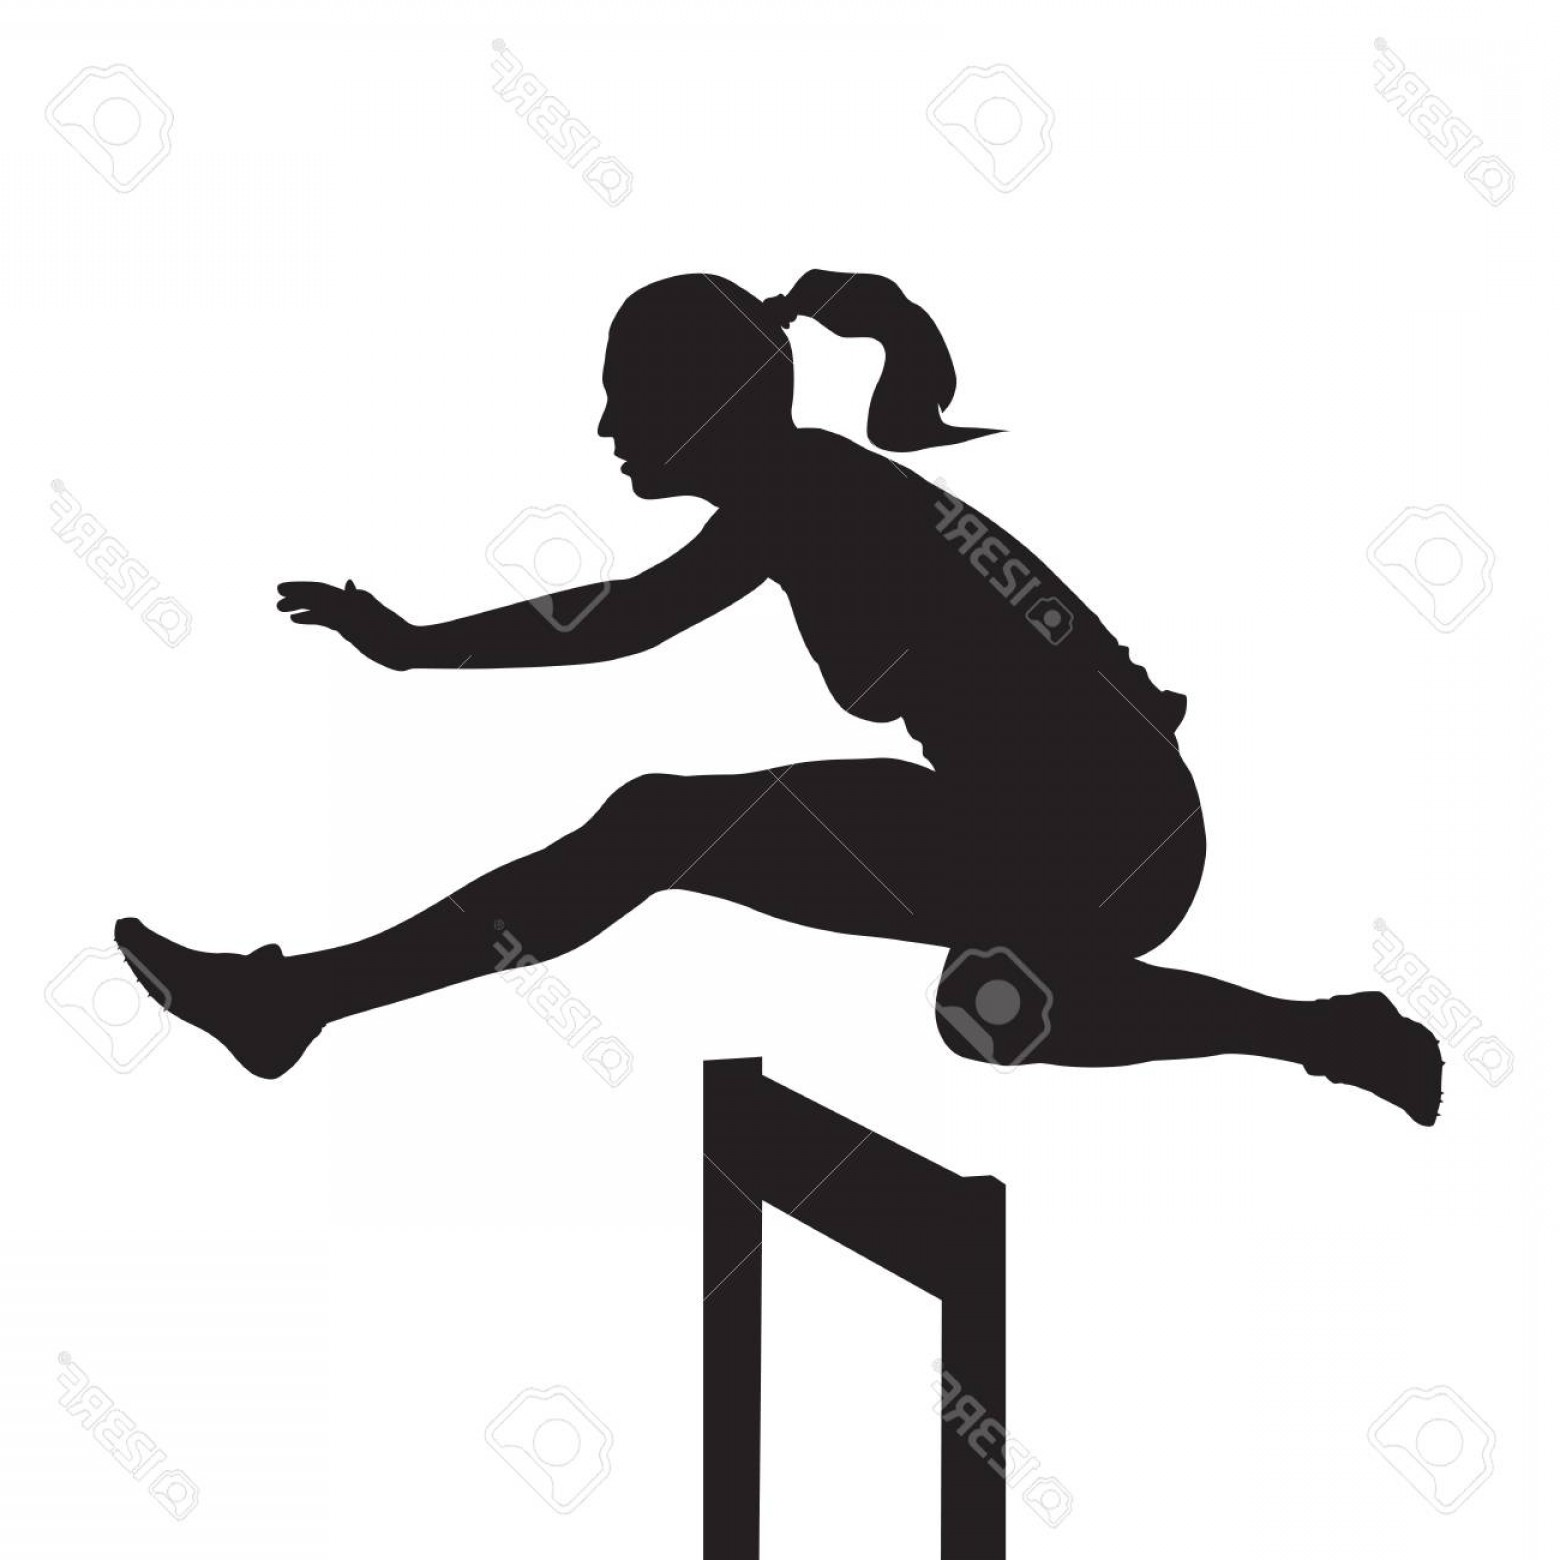 Vector Silhouette Of Girl Running Track: Photostock Vector Woman Jumping And Running Over Hurdles Hurdle Race Vector Silhouette